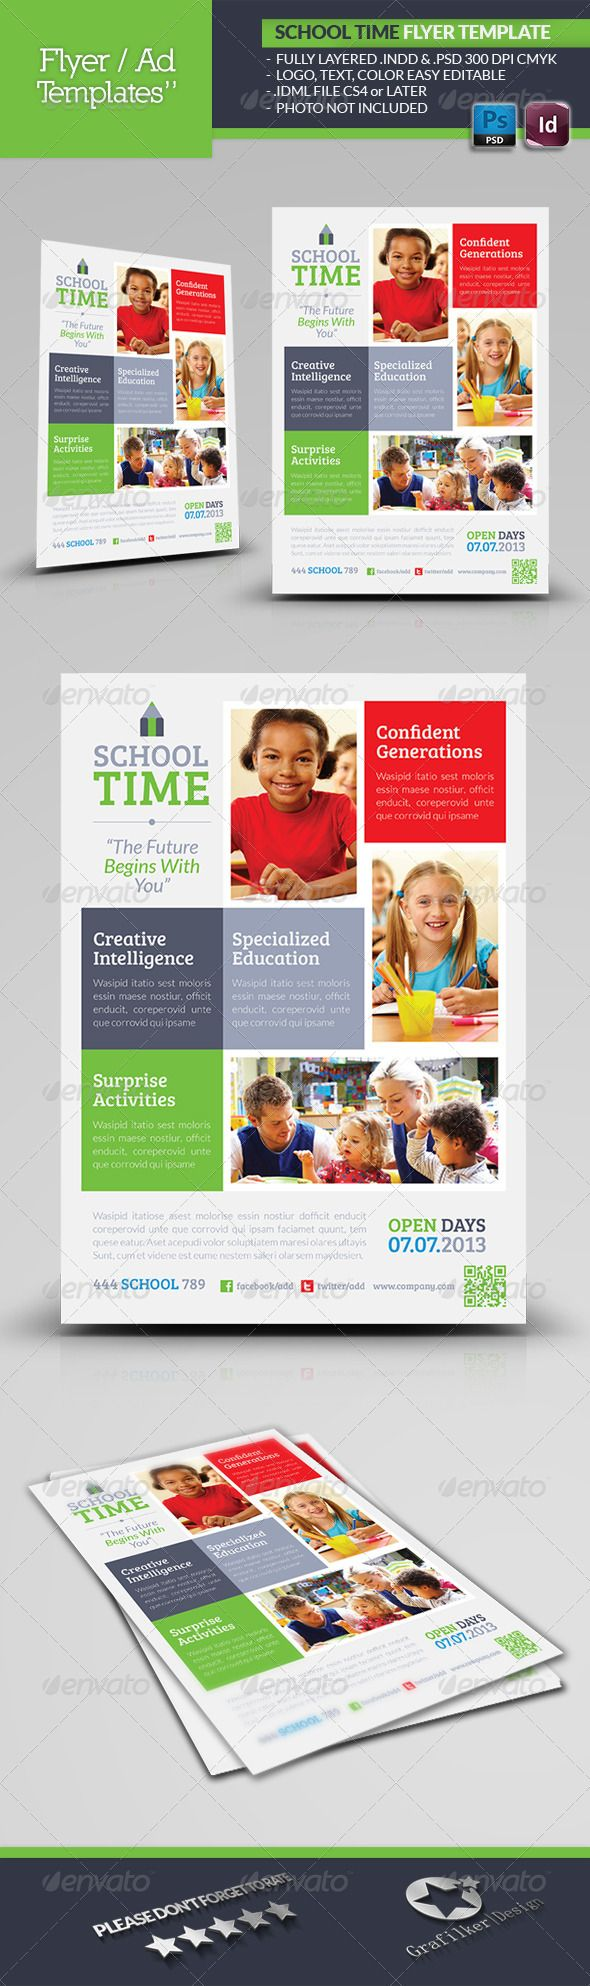 School Time Flyer Template #GraphicRiver School Time Flyer Template Fully layered INDD Fully layered PSD 300 Dpi, CMYK IDML format open Indesign CS4 or later Completely editable, print ready Text/Font or Color can be altered as needed All Image are in vector format, so can customise easily Photos are not included in the file Font File: Lato Font: .fontsquirrel /fonts/lato Bree-serif: .fontsquirrel /fonts/bree-serif Help.txt file Created: 18June13 GraphicsFilesIncluded: PhotoshopPSD #InDesignINDD